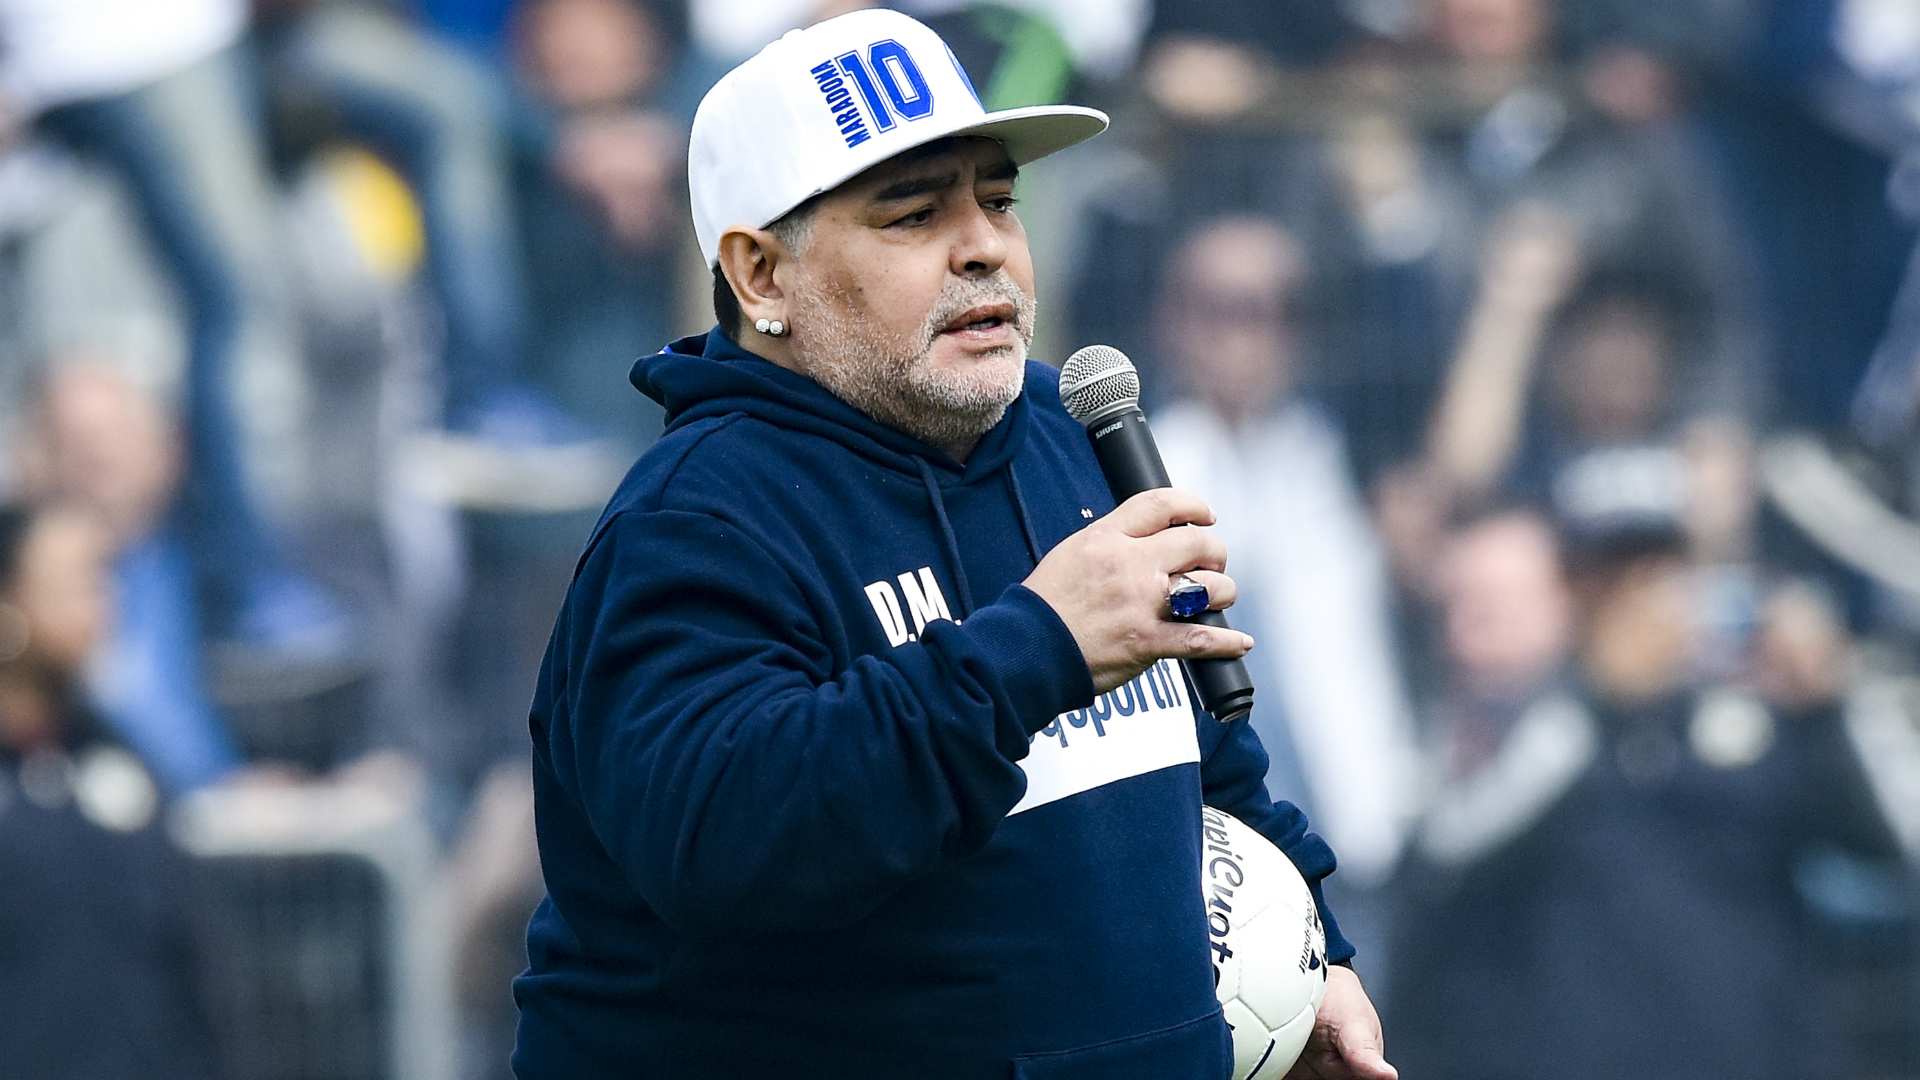 Diego Maradona was a supporter of the entire African continent - Jordaan